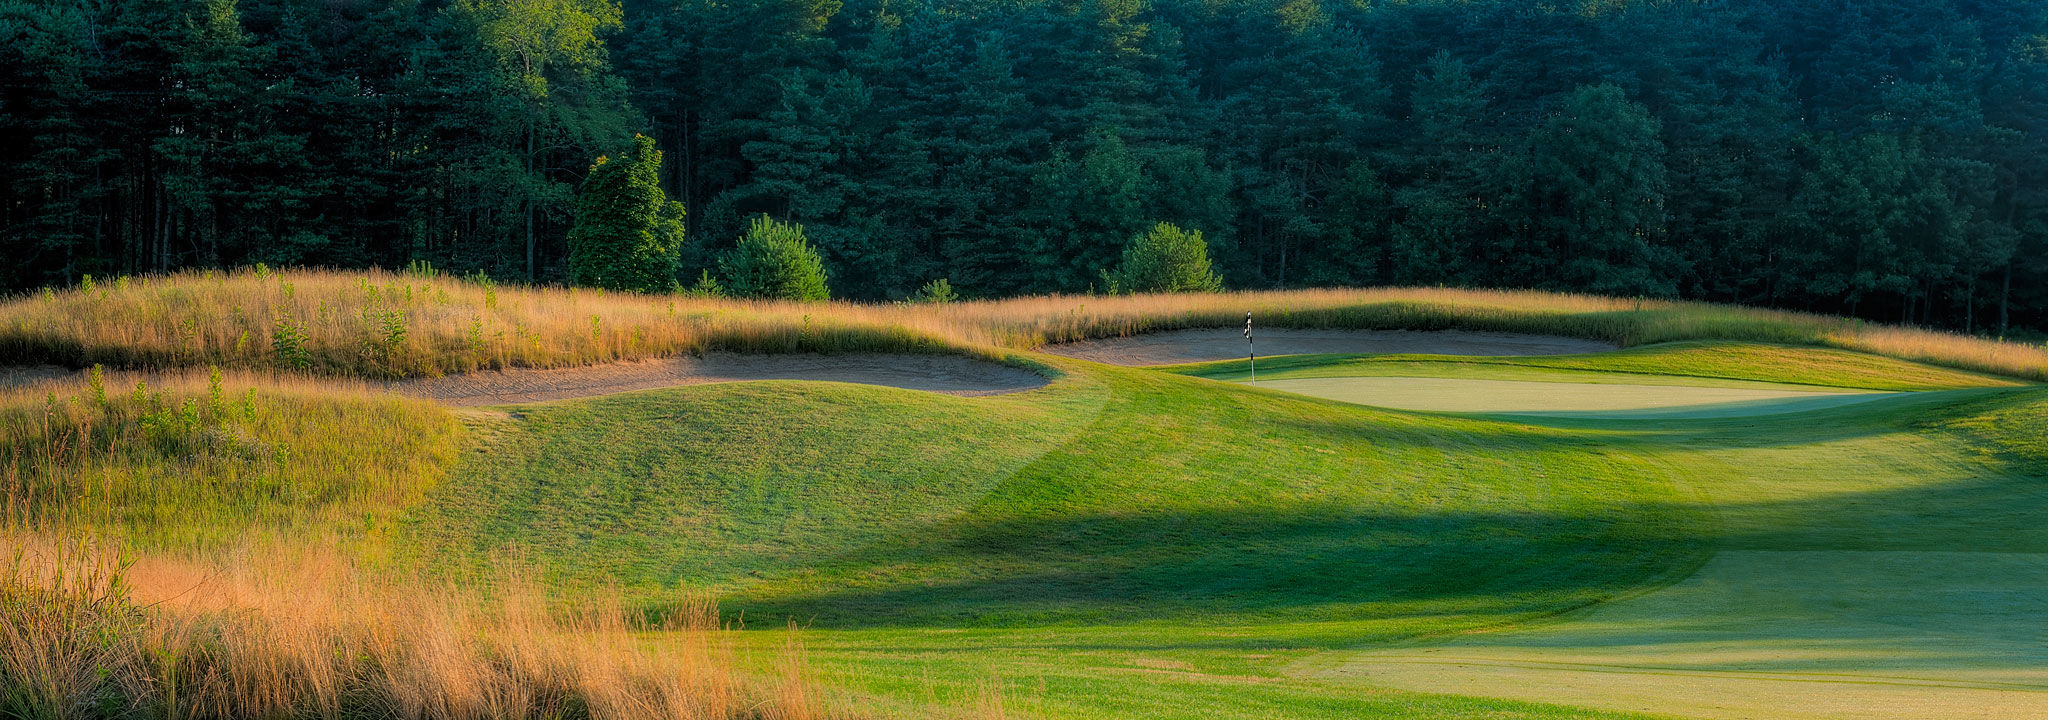 Cedar chase golf club cover picture